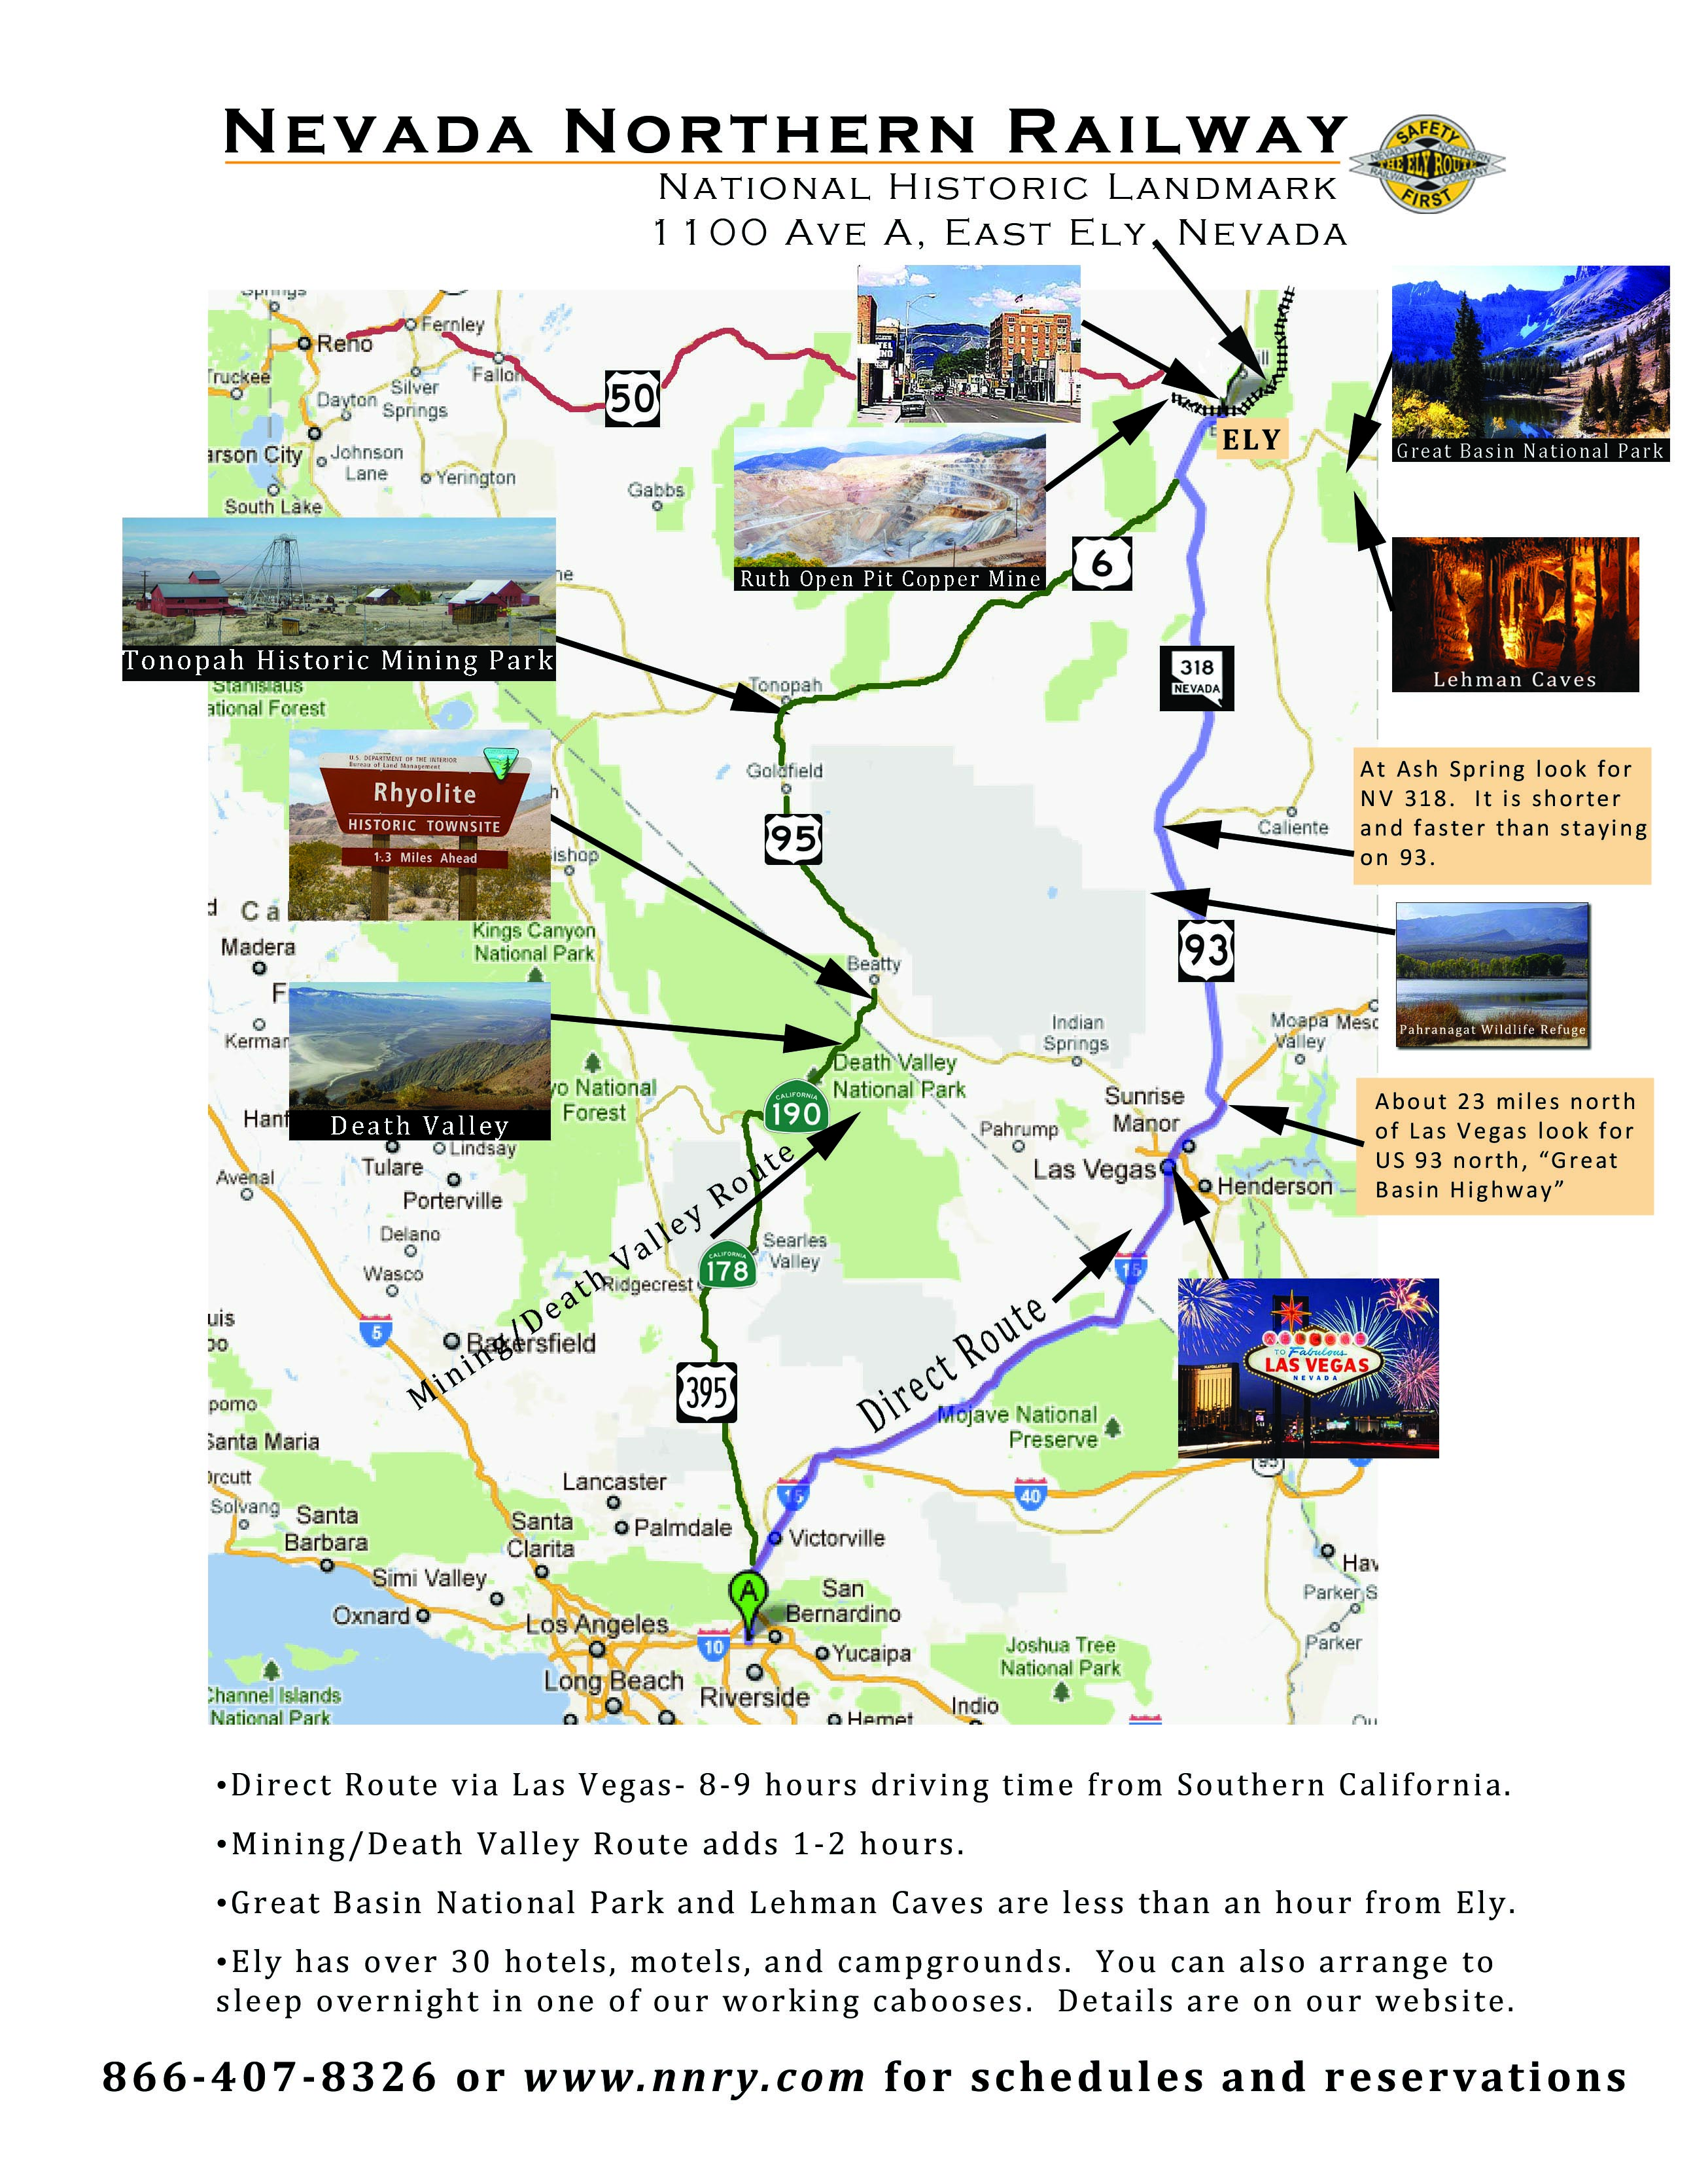 How to get to the Nevada Northern Railway Museum in Ely, Nevada